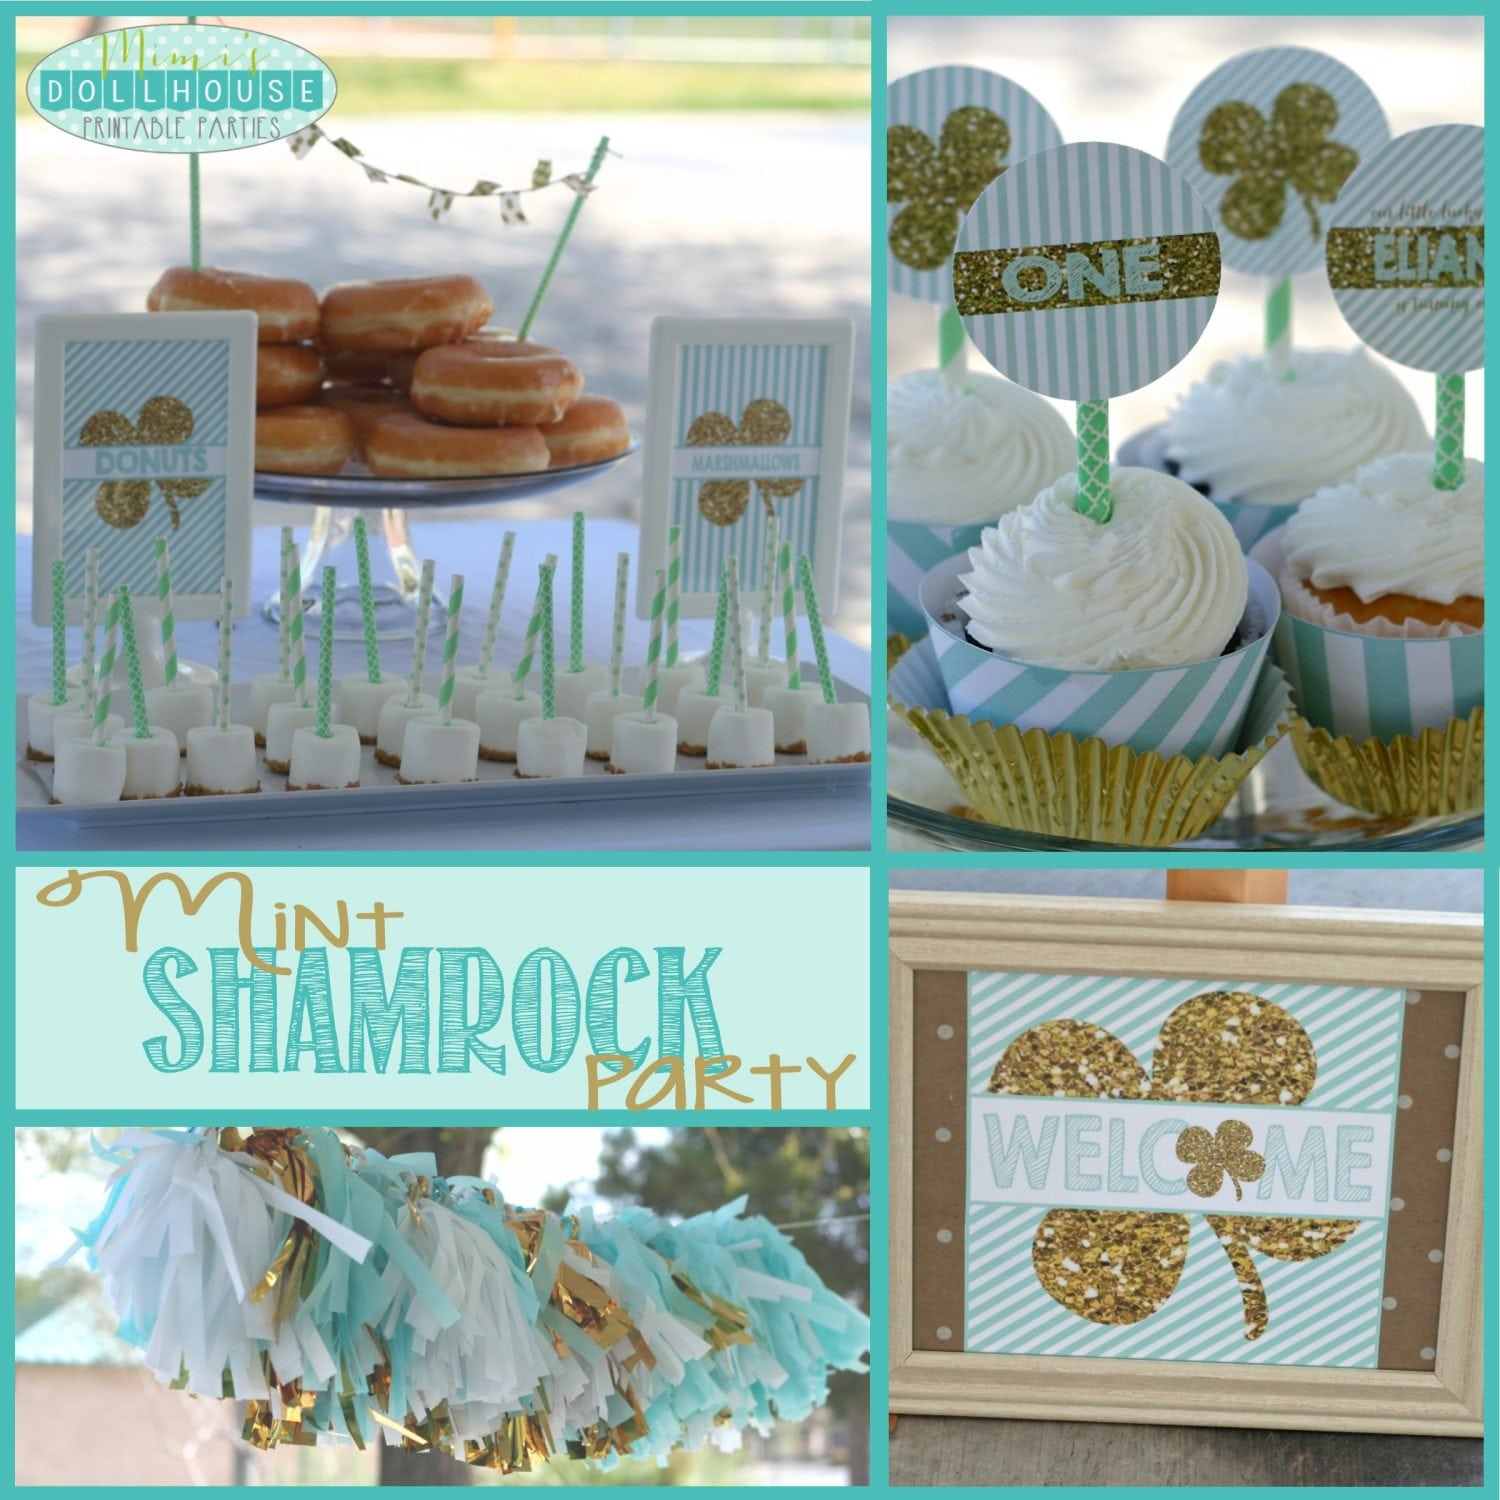 St. Patrick's Day: Eliana's Mint Shamrock Party